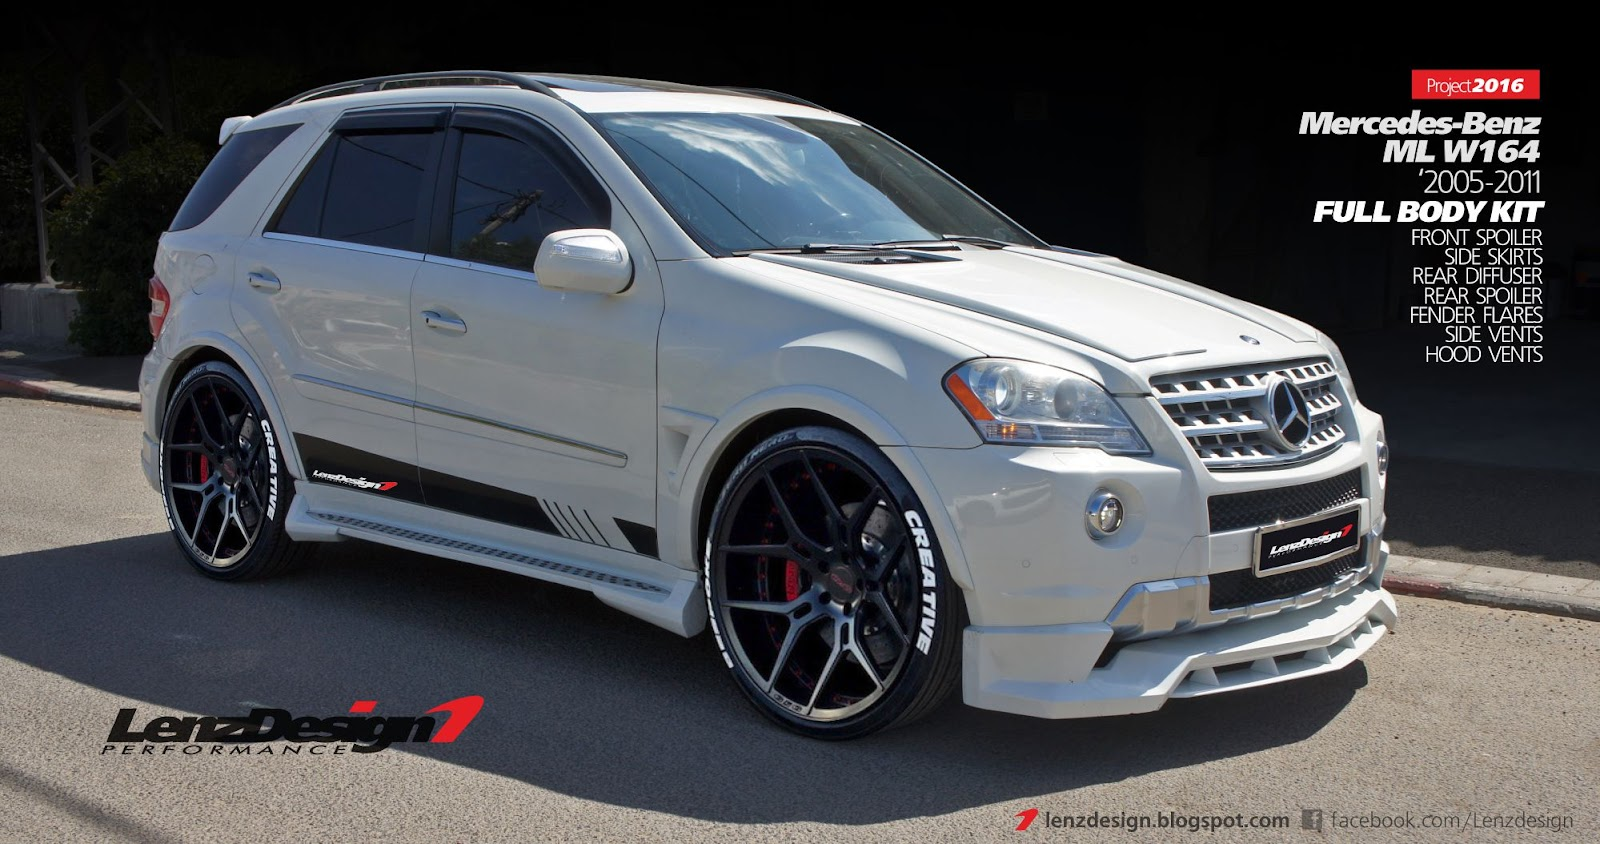 Mercedes benz ml w164 tuning wide body kit lenzdesign for Mercedes benz tuning